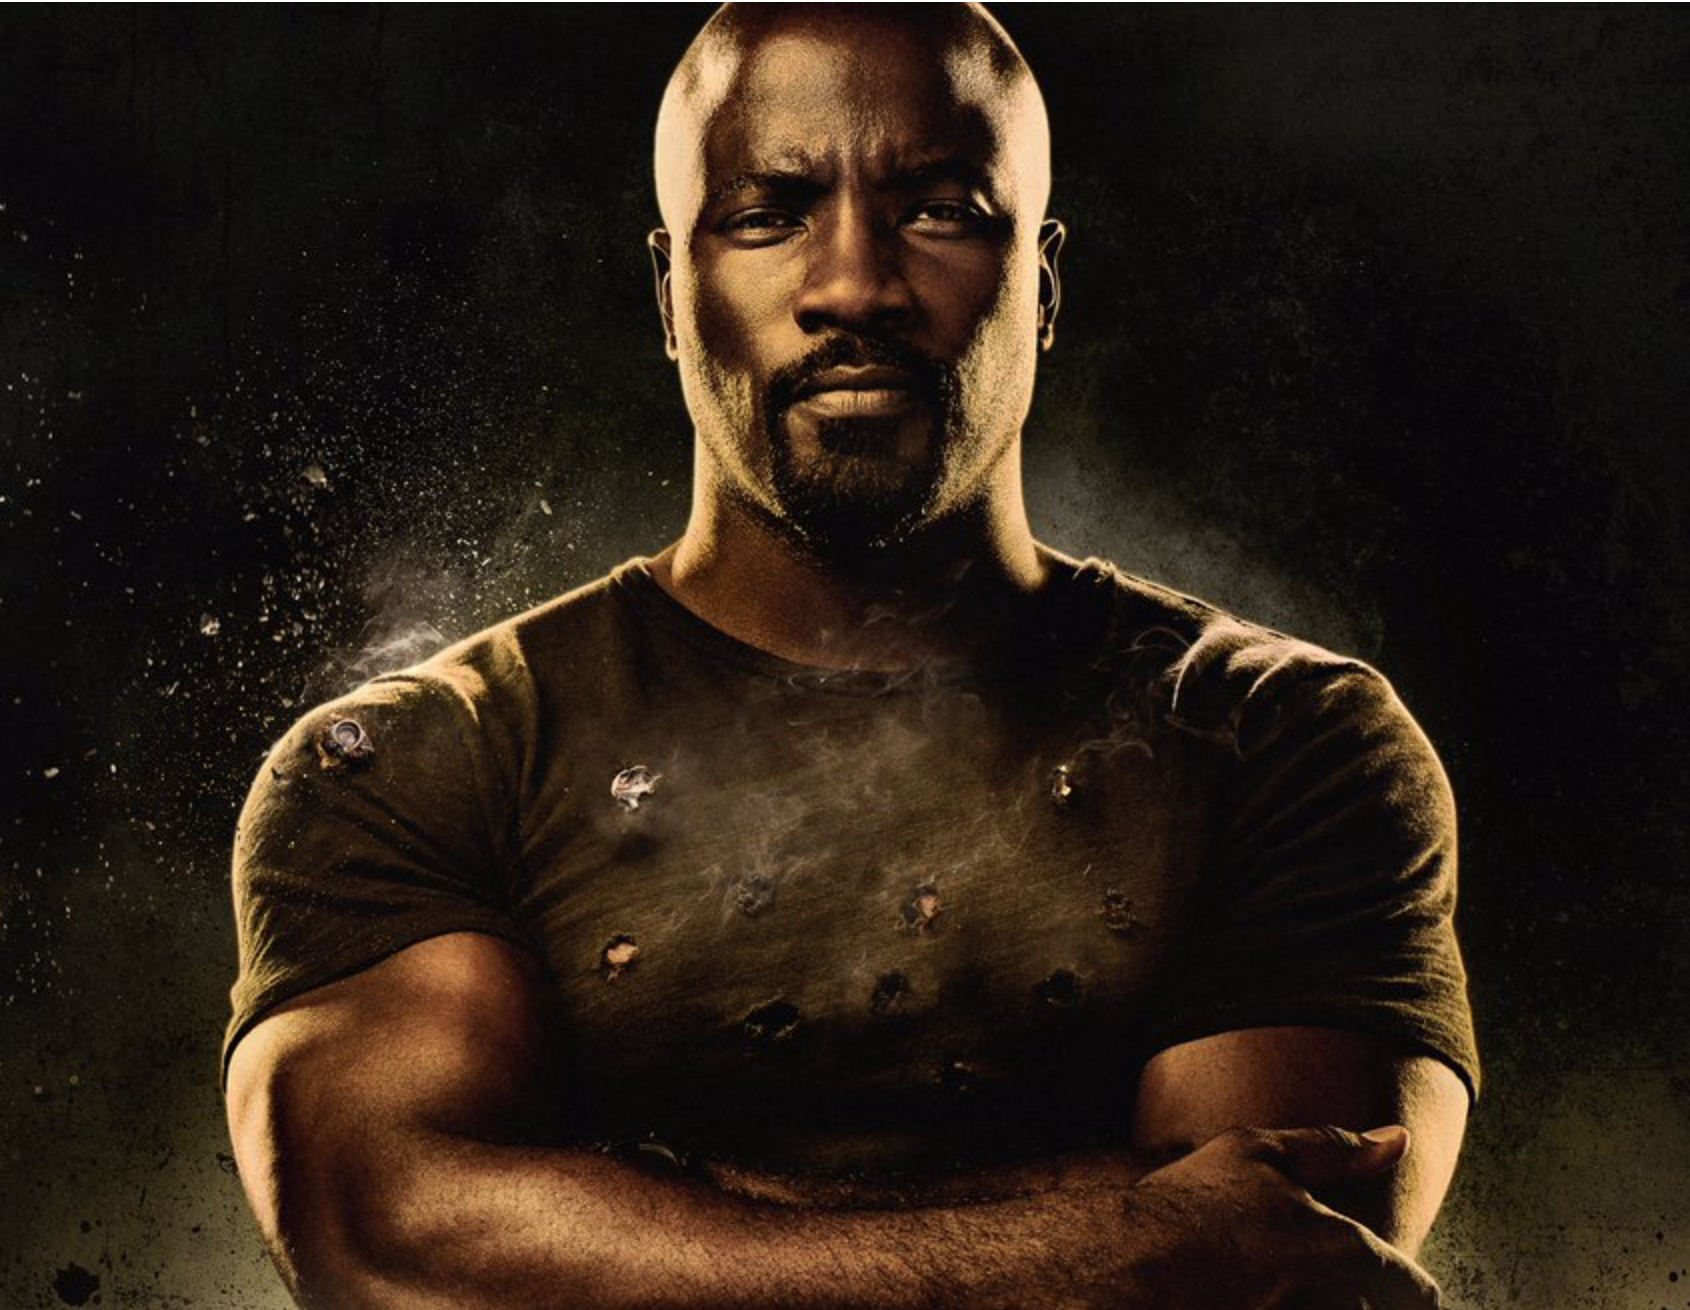 New 'Luke Cage' Poster Emerges, Trailer Tomorrow